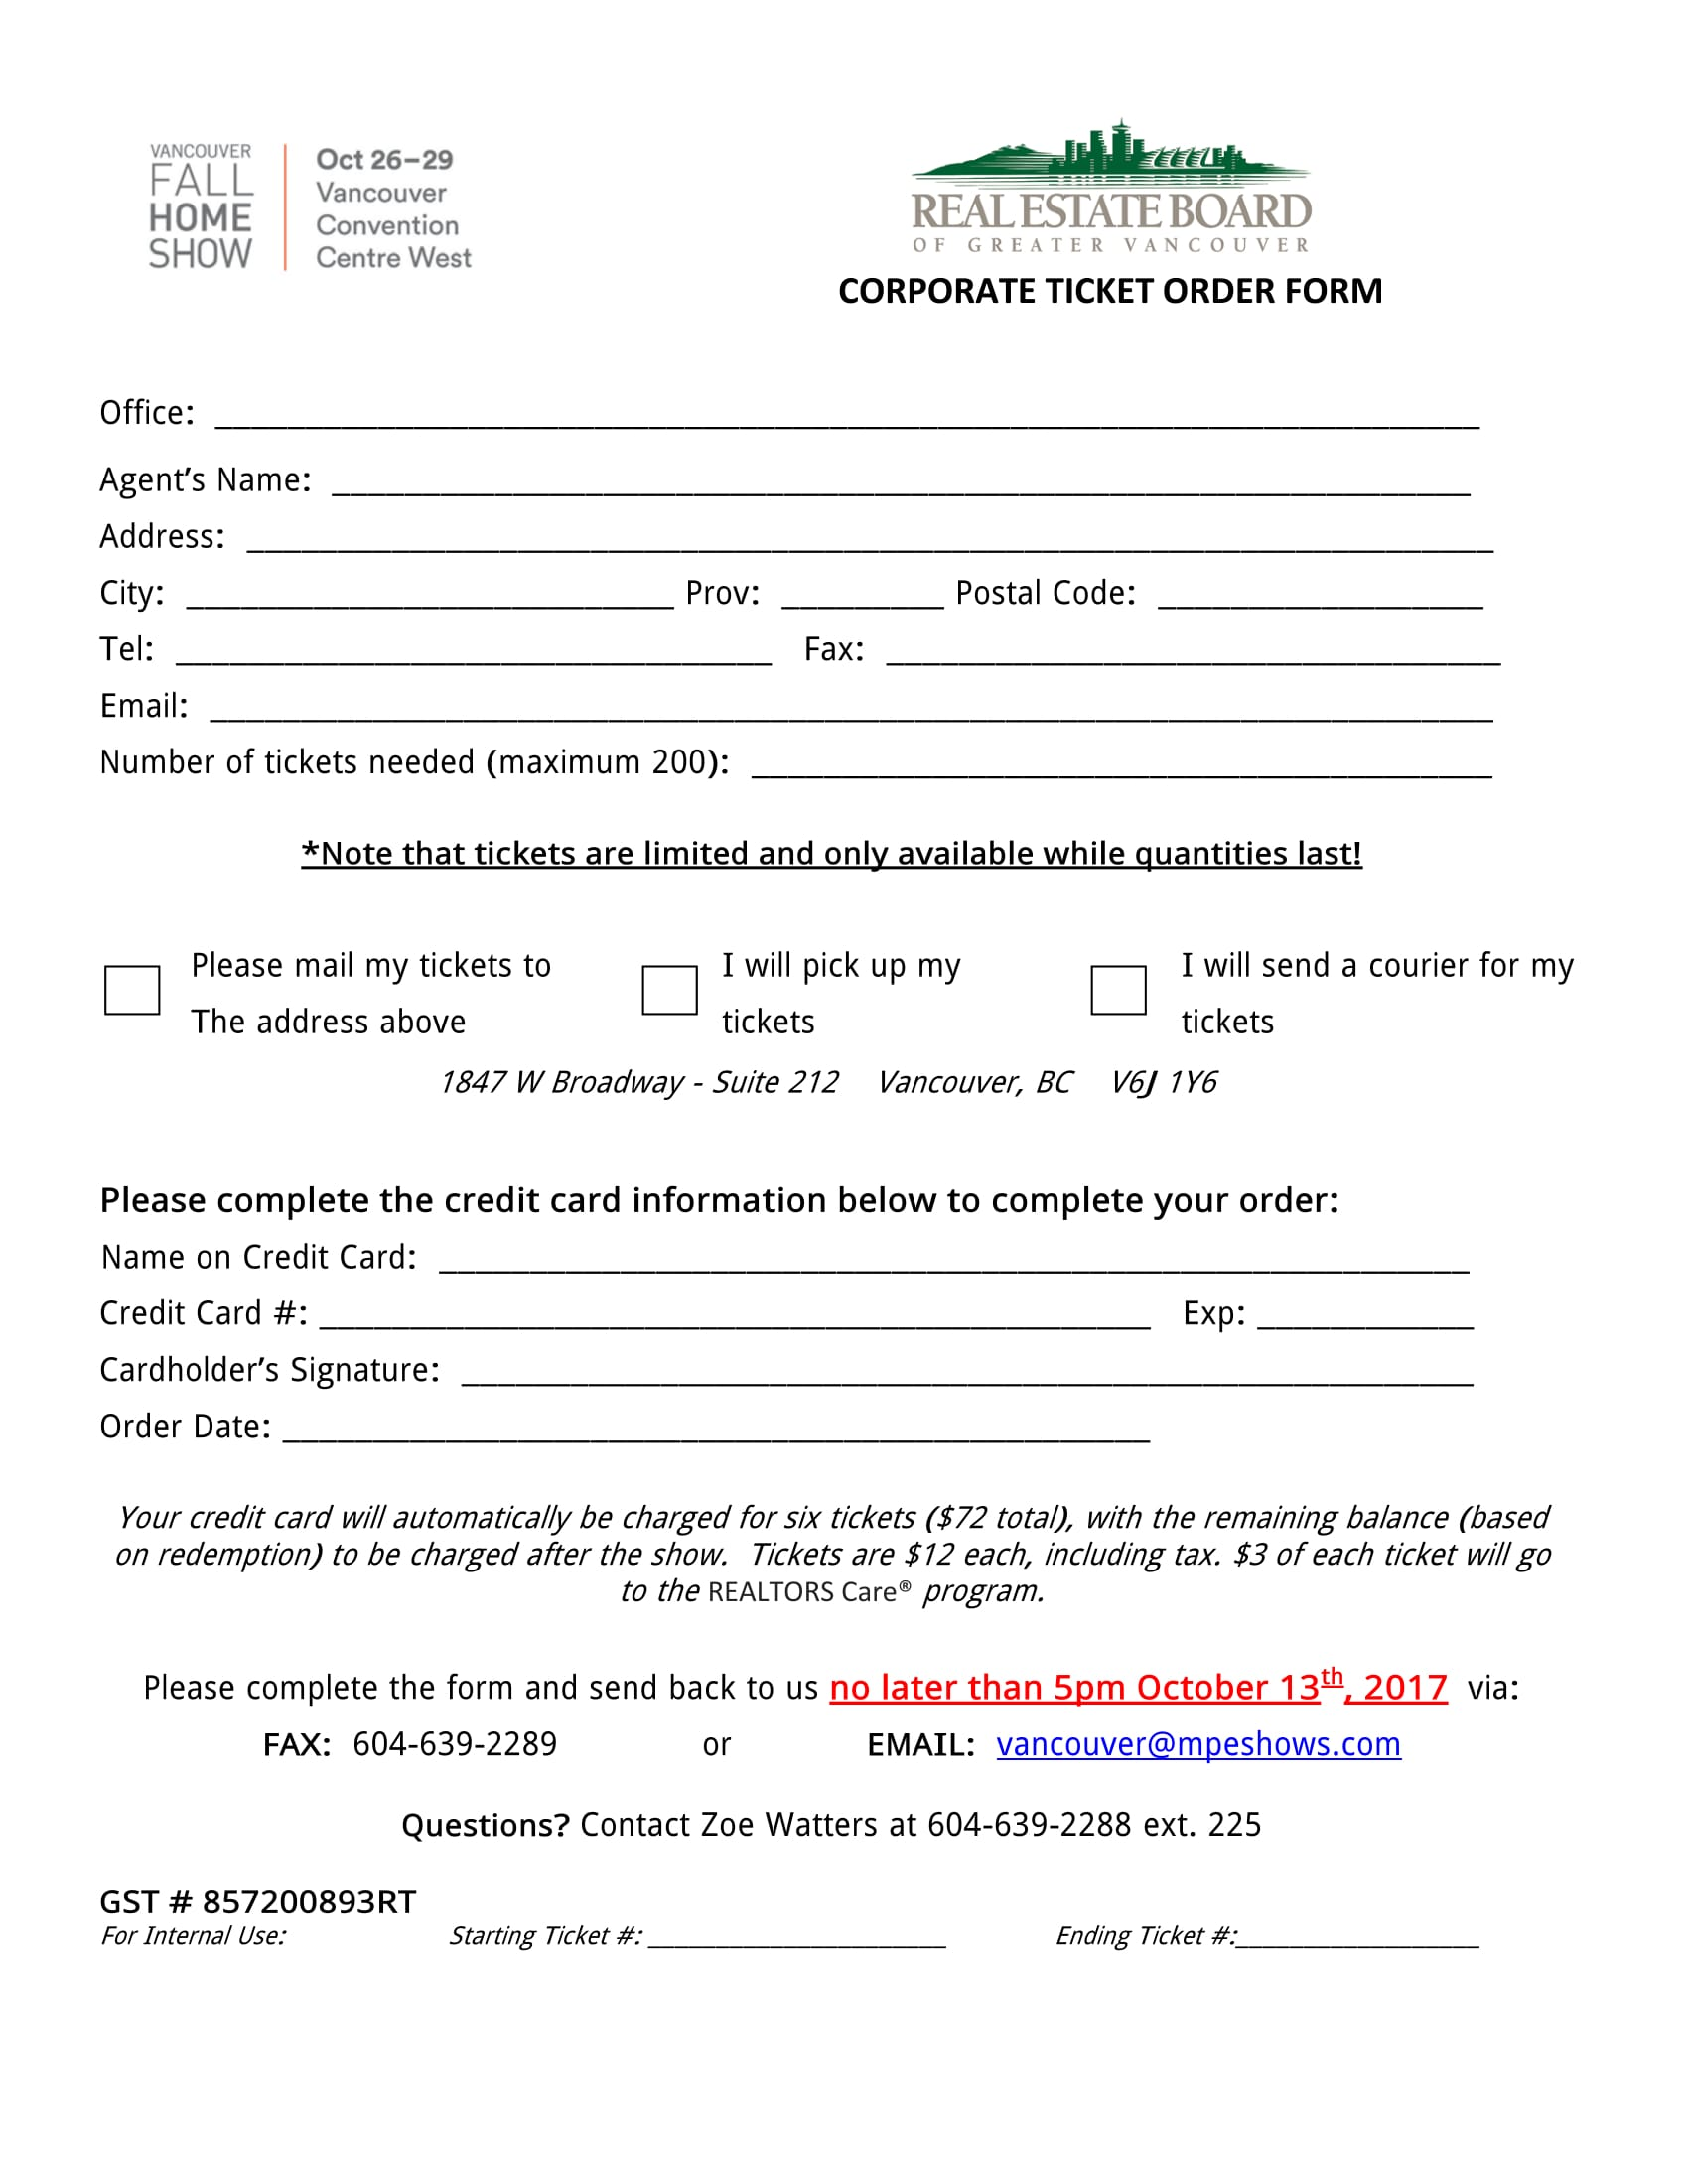 corporate ticket order form 1